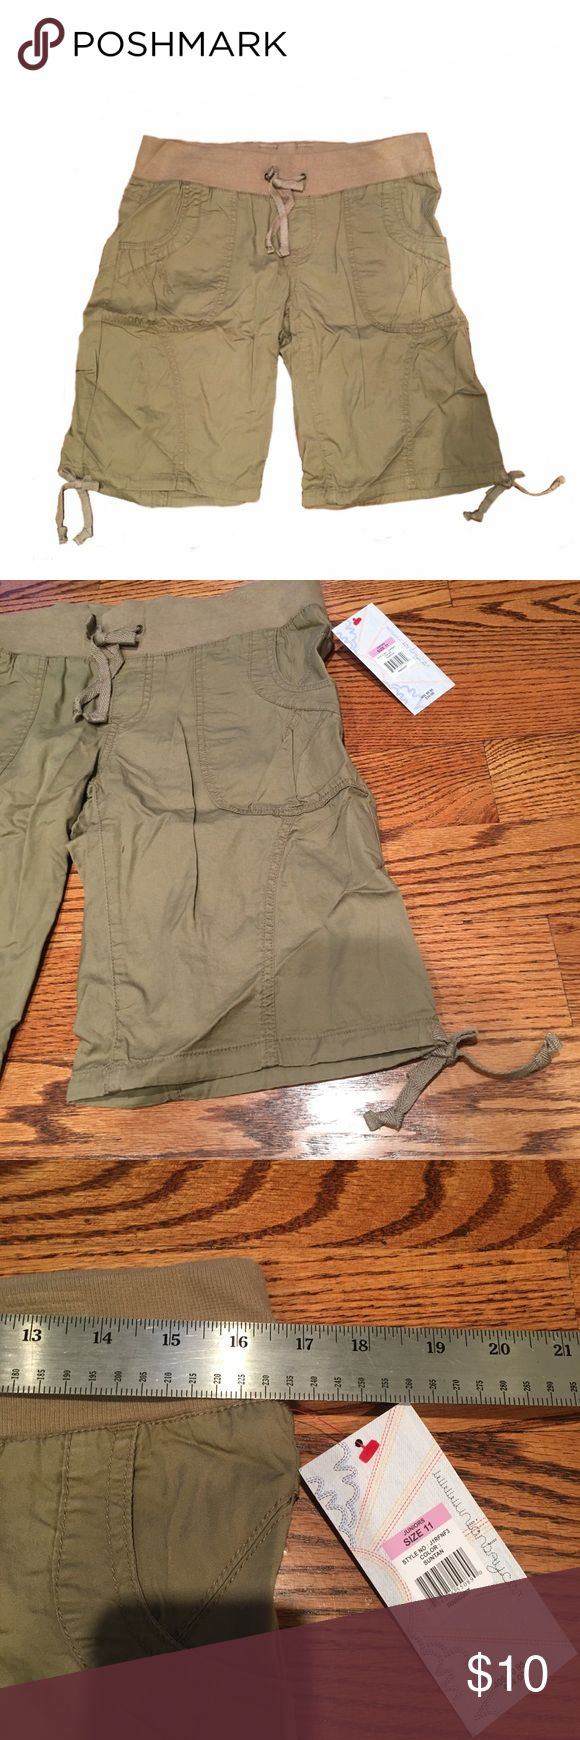 "Women's Elastic Cargo Shorts WOMENS CARGO SHORTS Size: Waist measures 33"" Color: Khaki/Olive Green Awesome stylish cargo shorts for women! Pockets on the side, an elastic band waist, and cute ties at the bottom. Brand new, NEVER WORN. Comment with any questions :) Shorts Cargos"